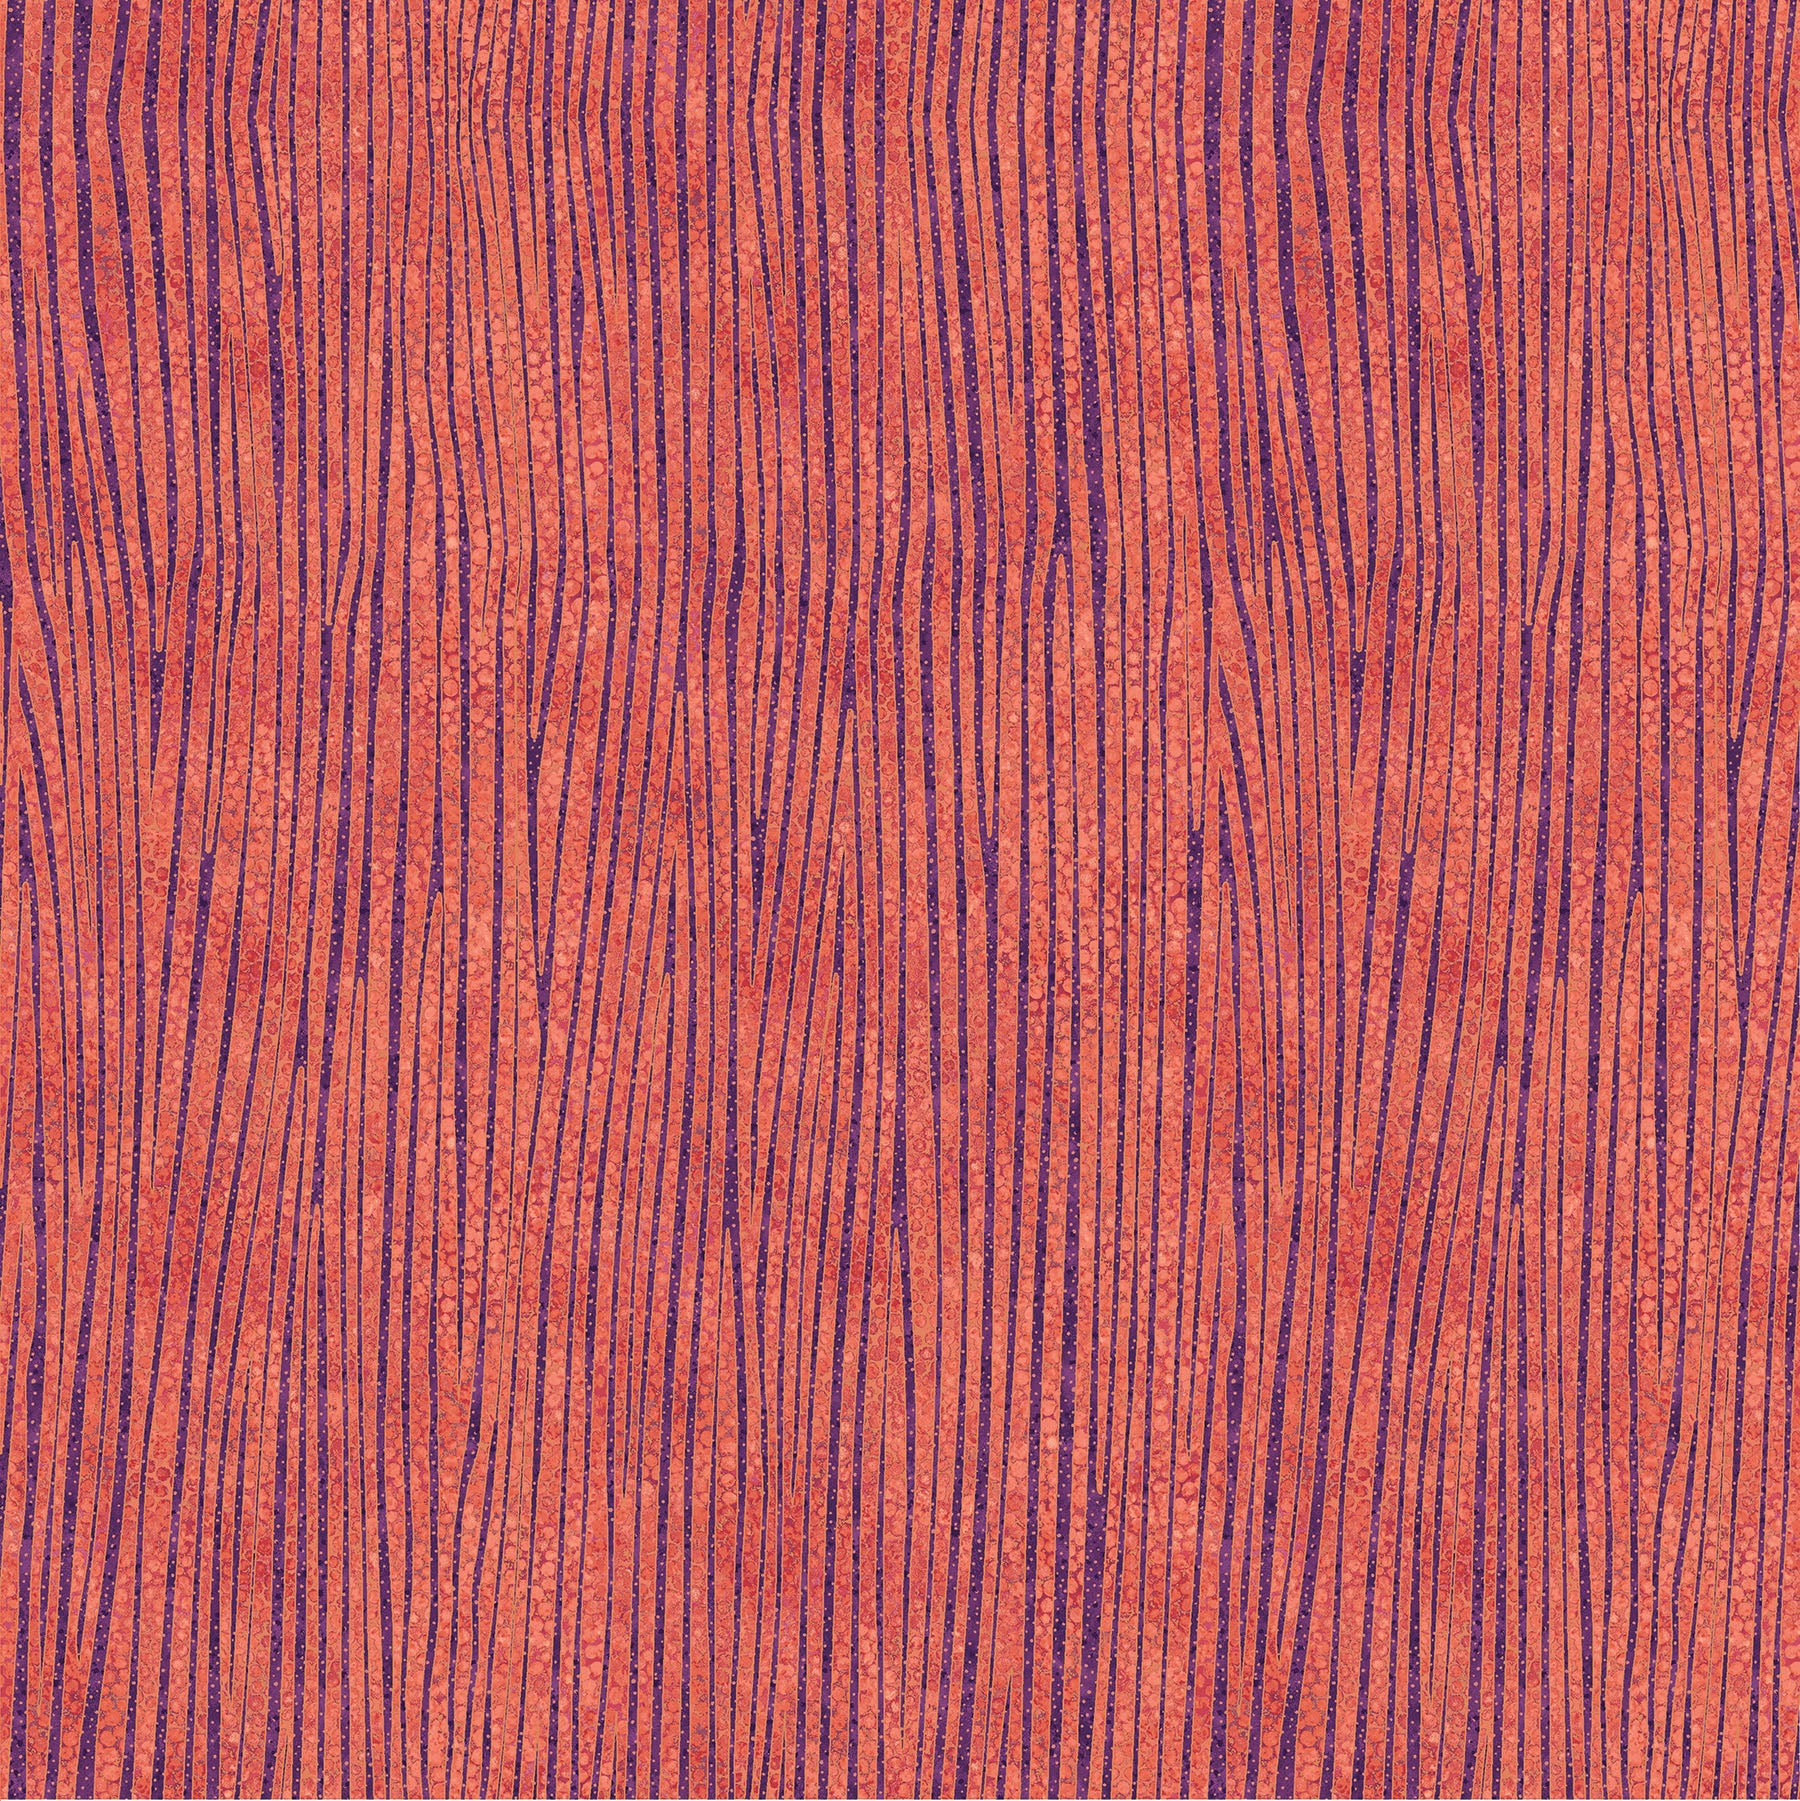 Shimmer - Coral Reef Fabric - Trapunto